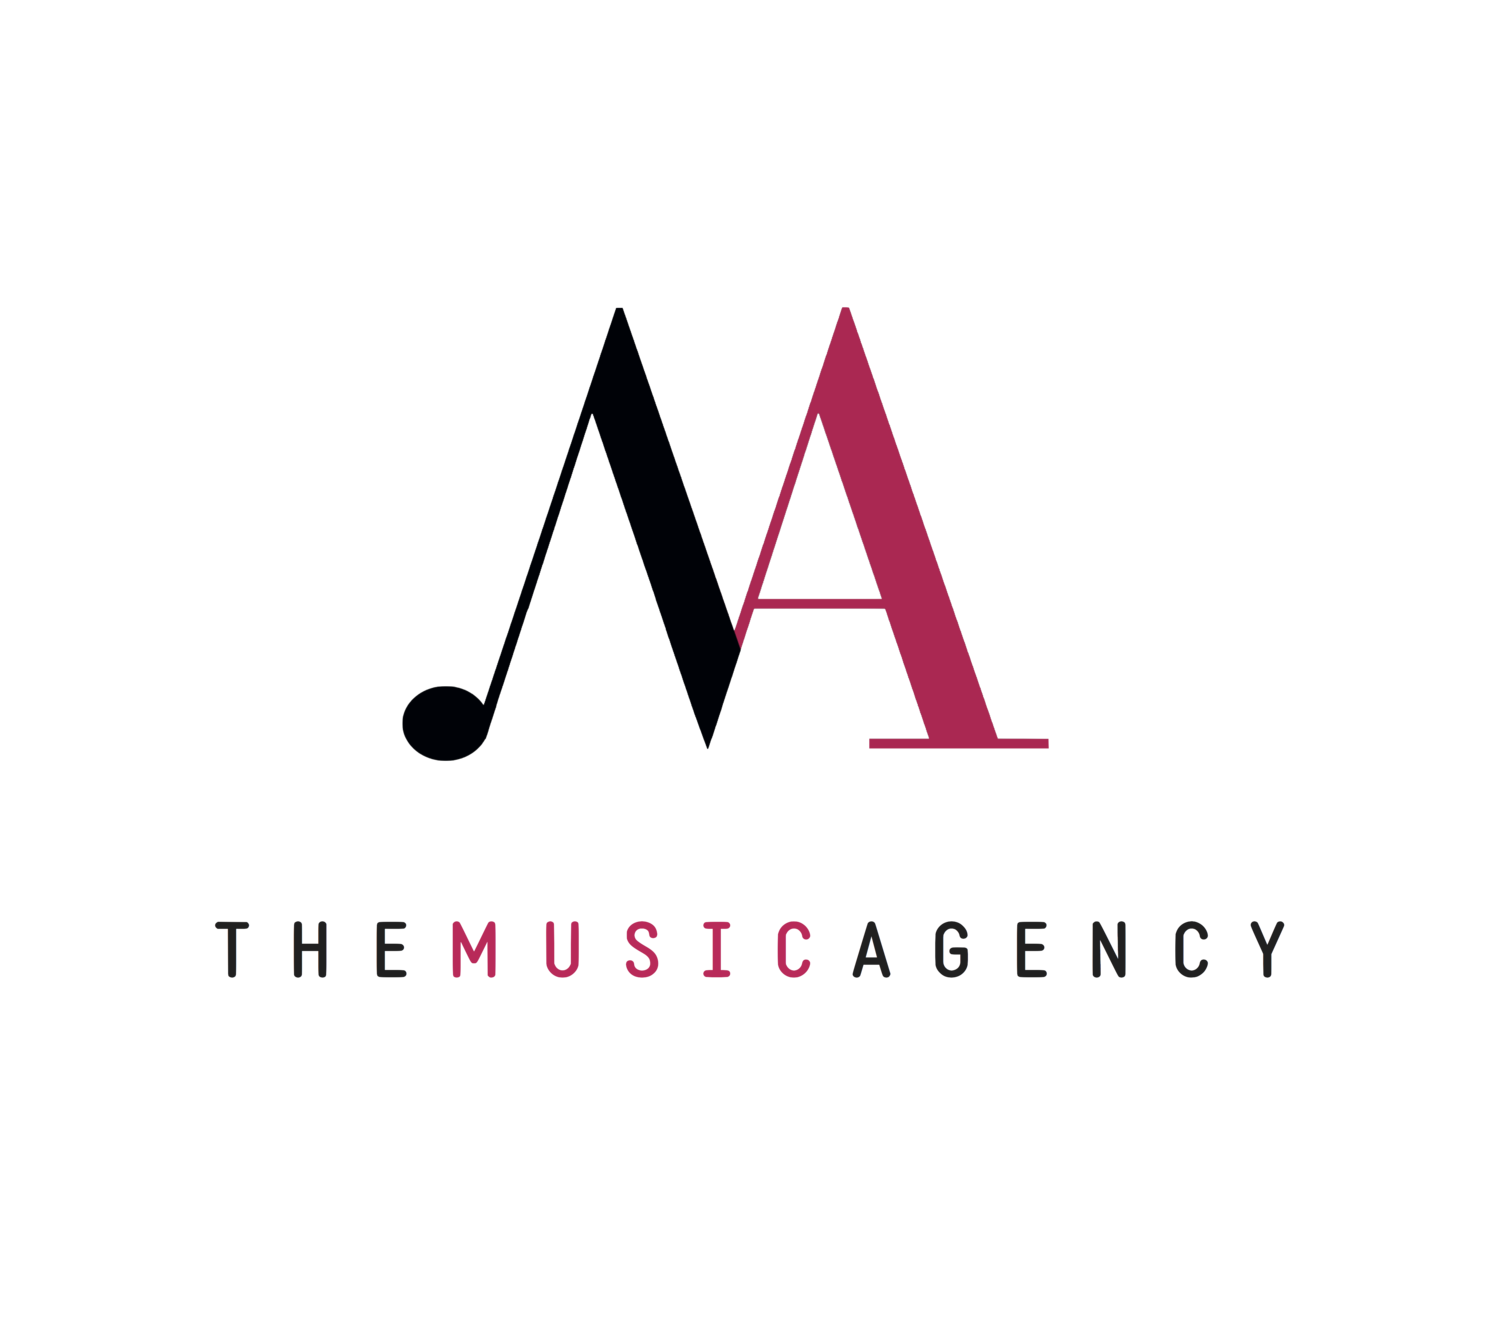 The Music Agency